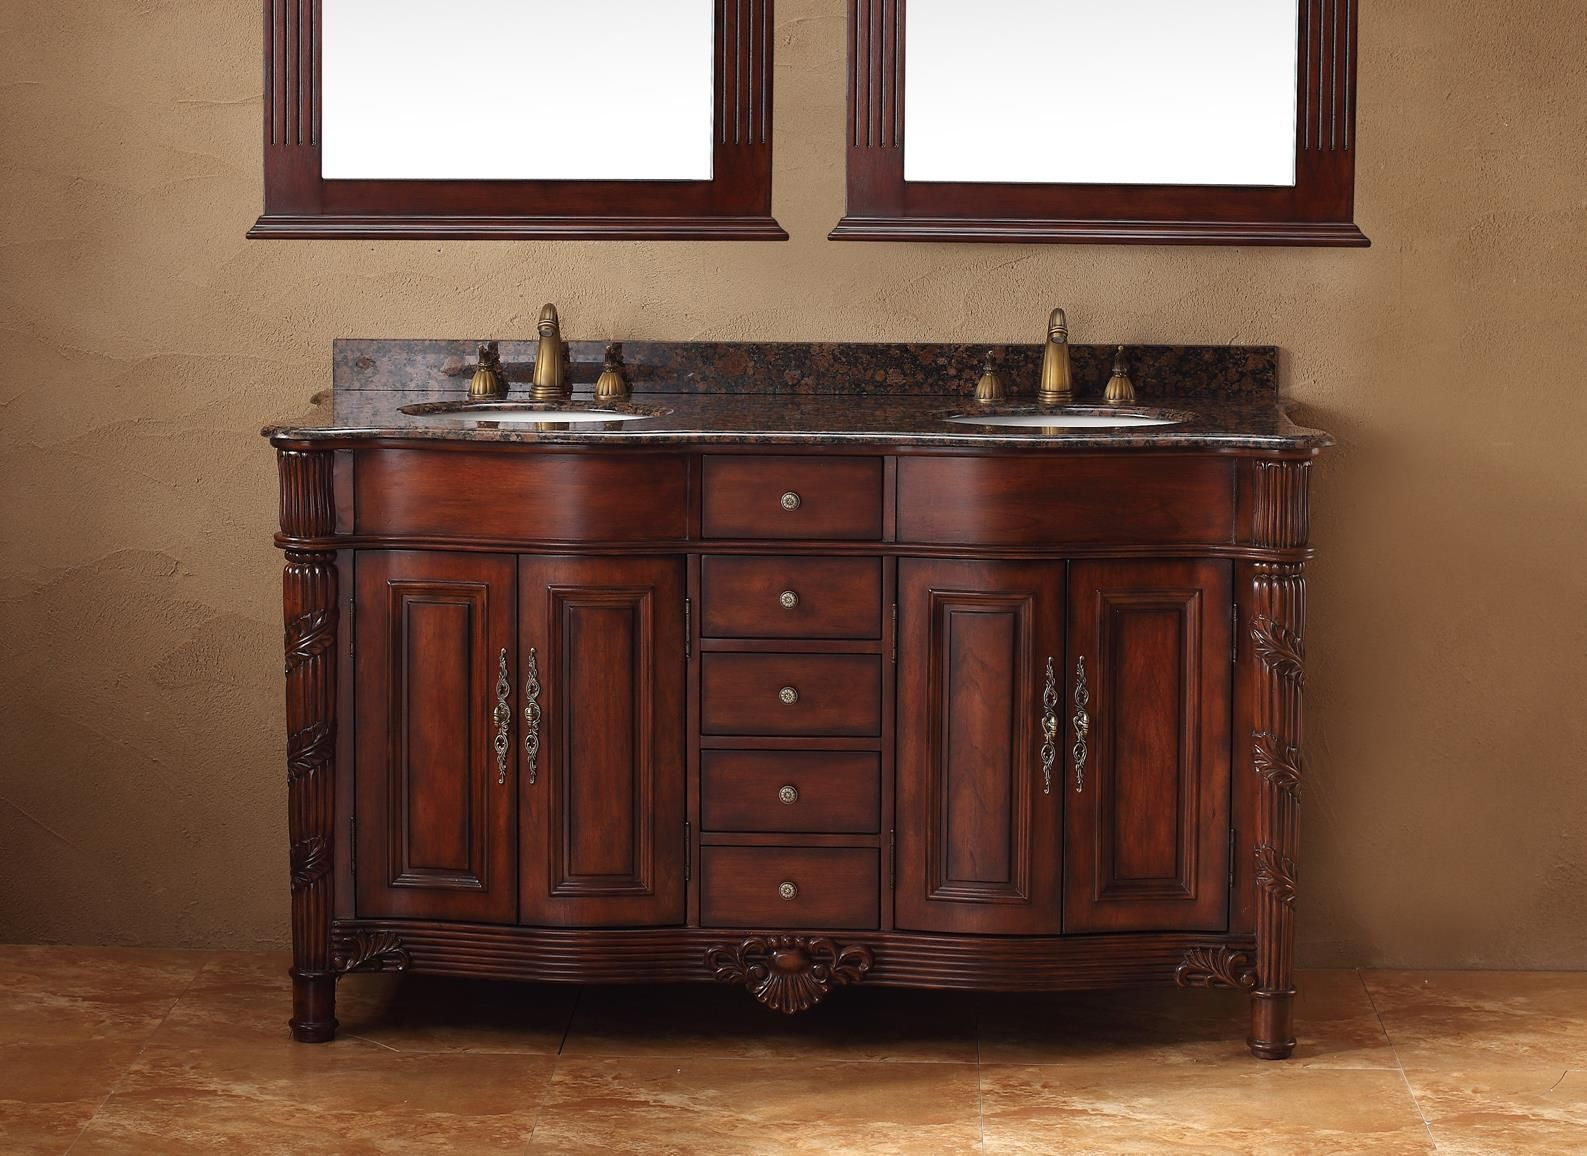 "Tuscany 60"" Double Sink Bathroom Vanity Cabinet  Cherry Finish Brilliant Cherry Bathroom Vanity Design Ideas"